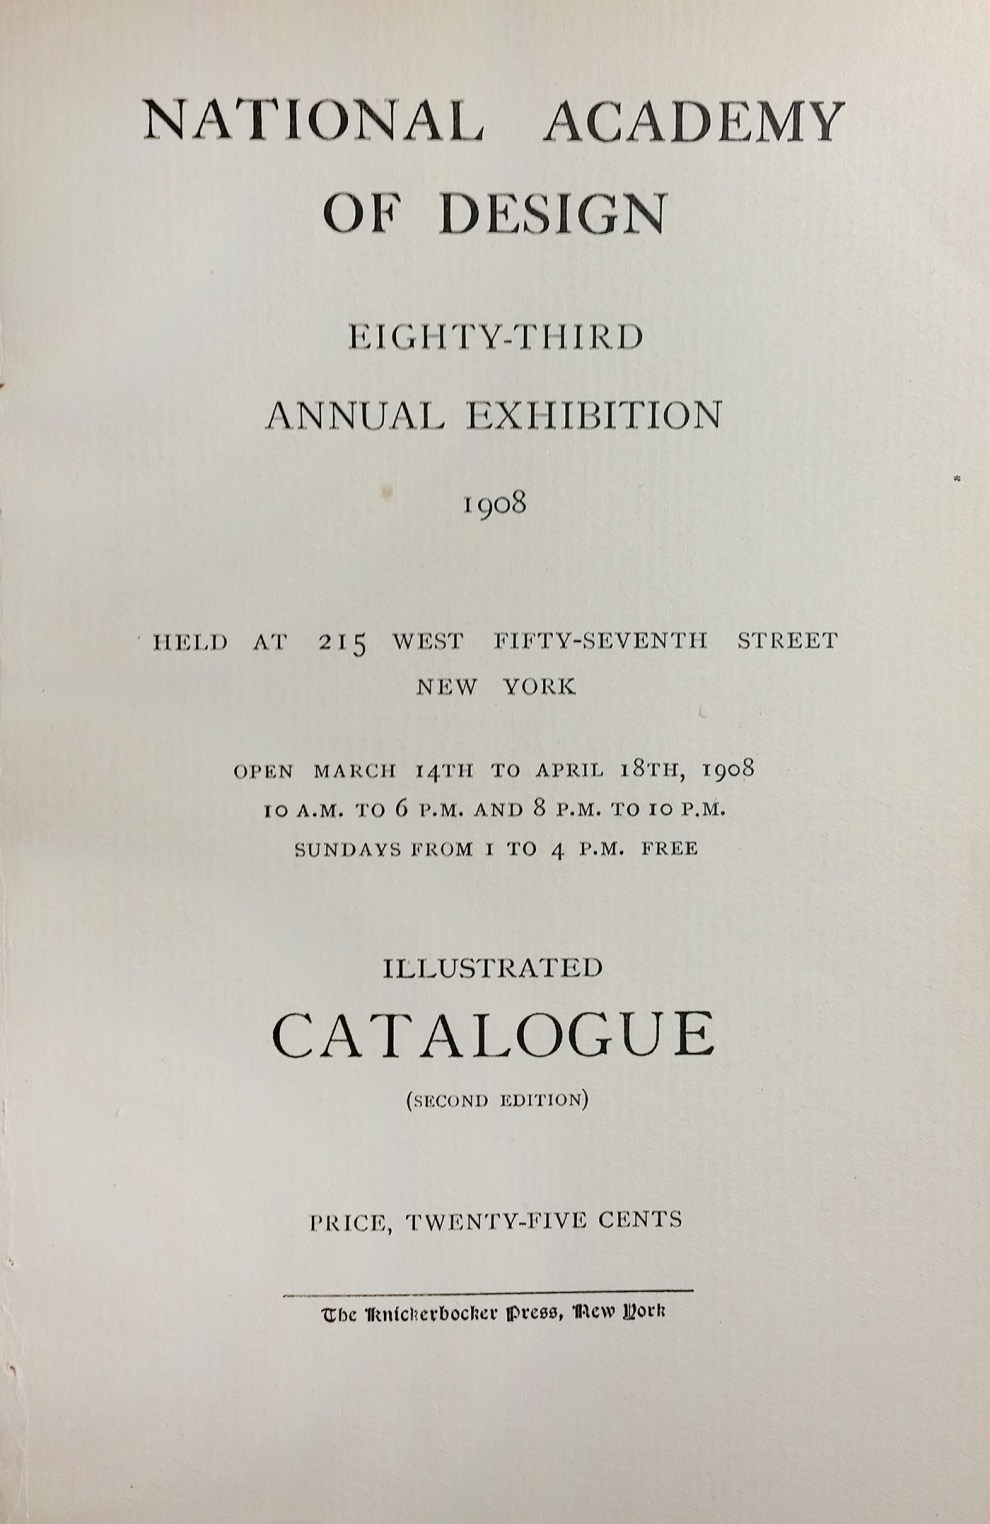 "1908 National Academy of Design, New York, NY, ""Eighty-Third Annual Exhibition"", March 14 - April 18"